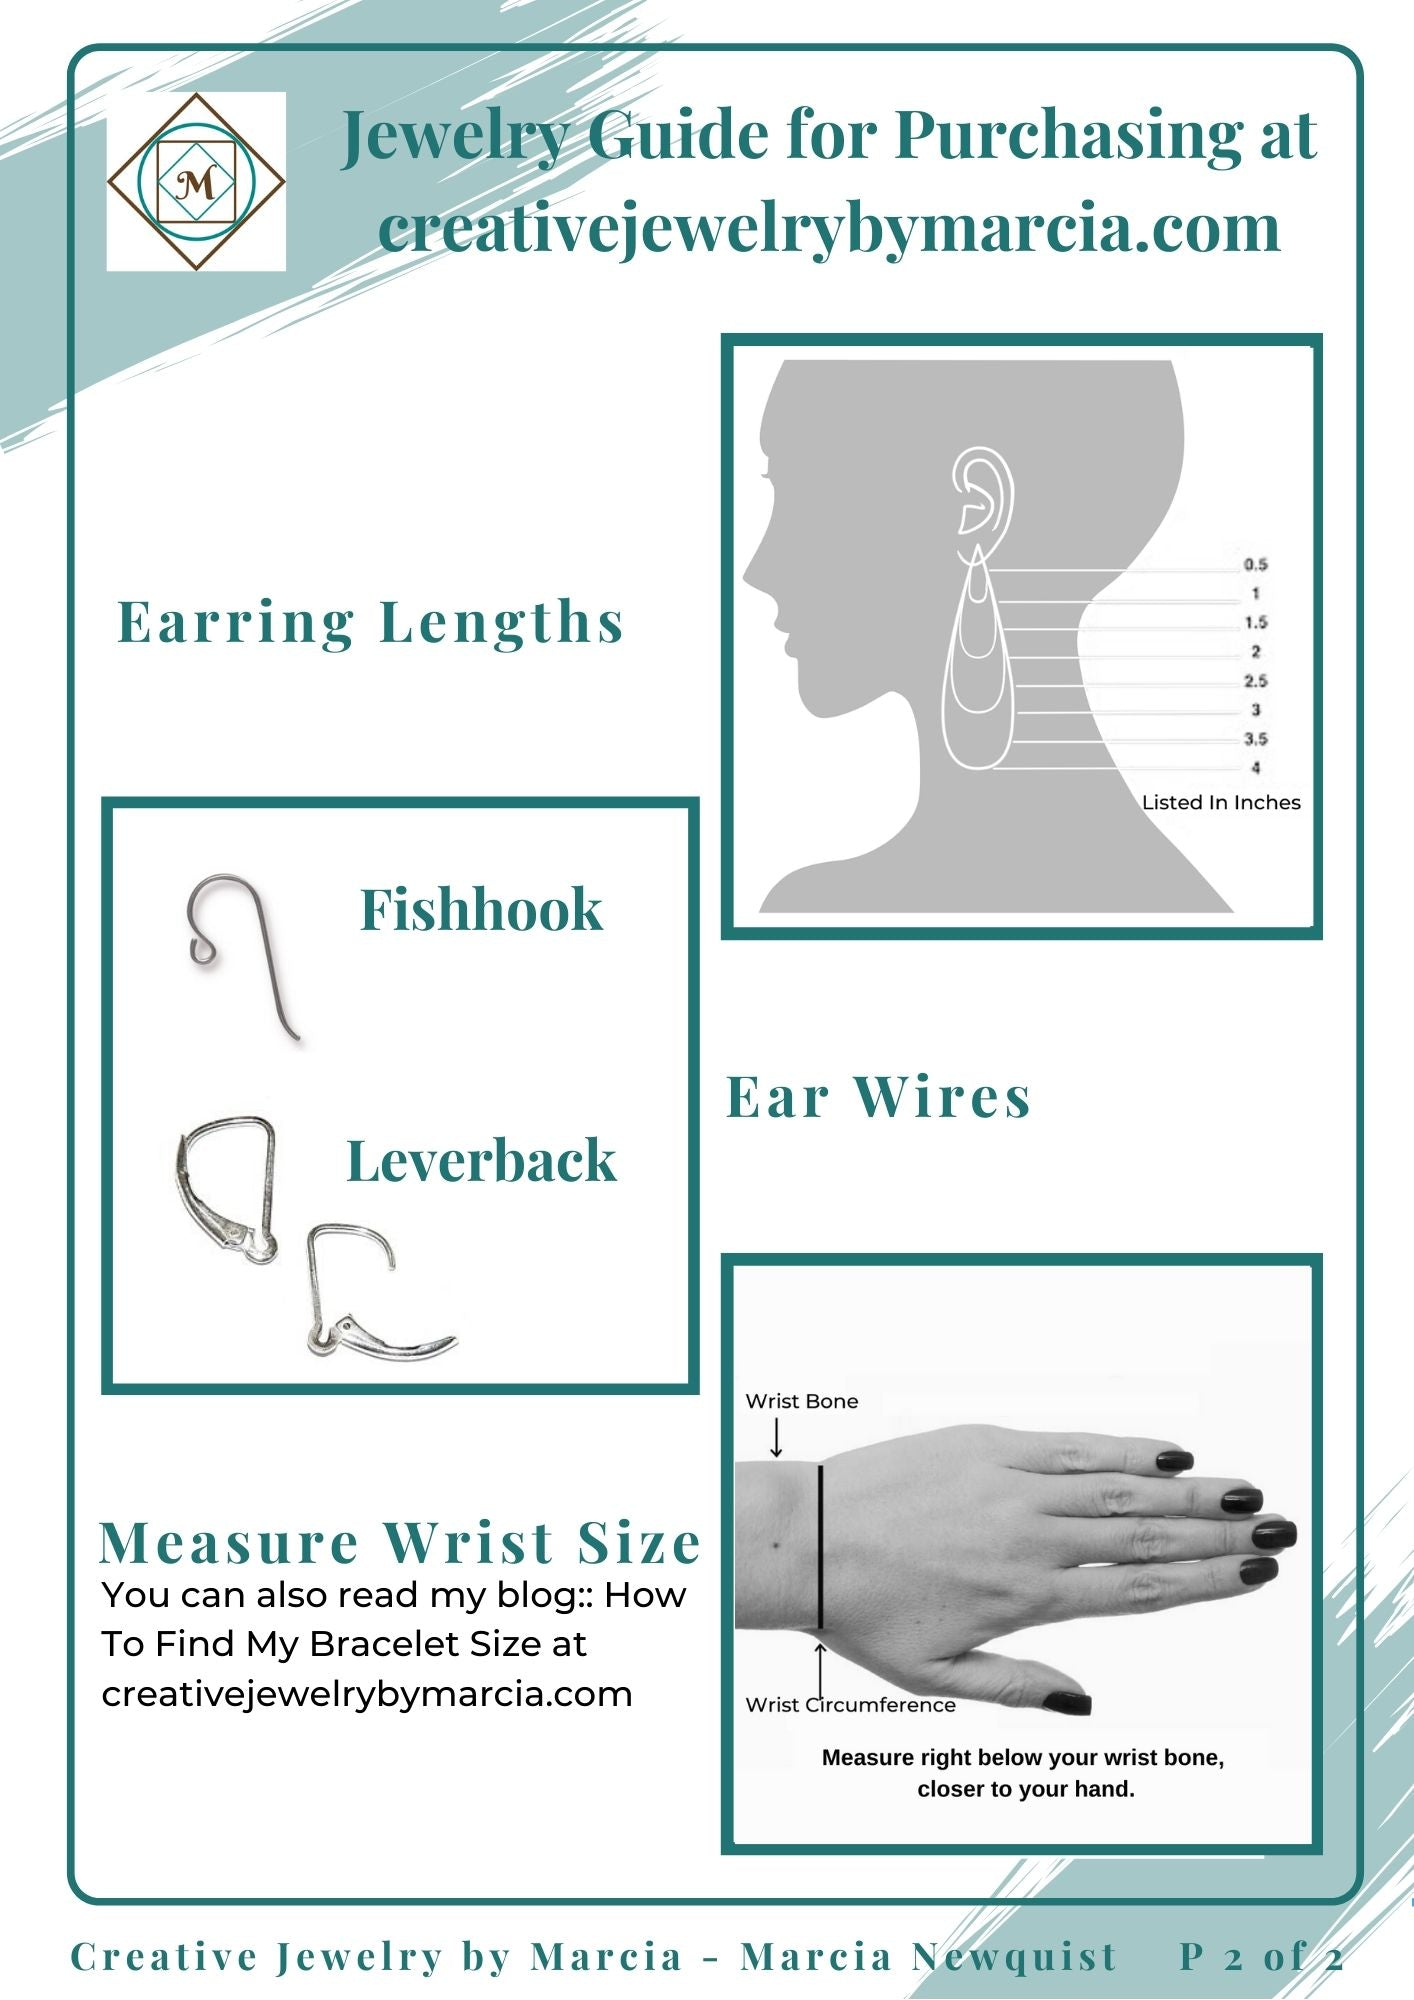 Jewelry Guide Page 2 shows photos and descriptions of Earring Length Chart Fishhook Earwire Leverback Earring, How to Measure wrist size.